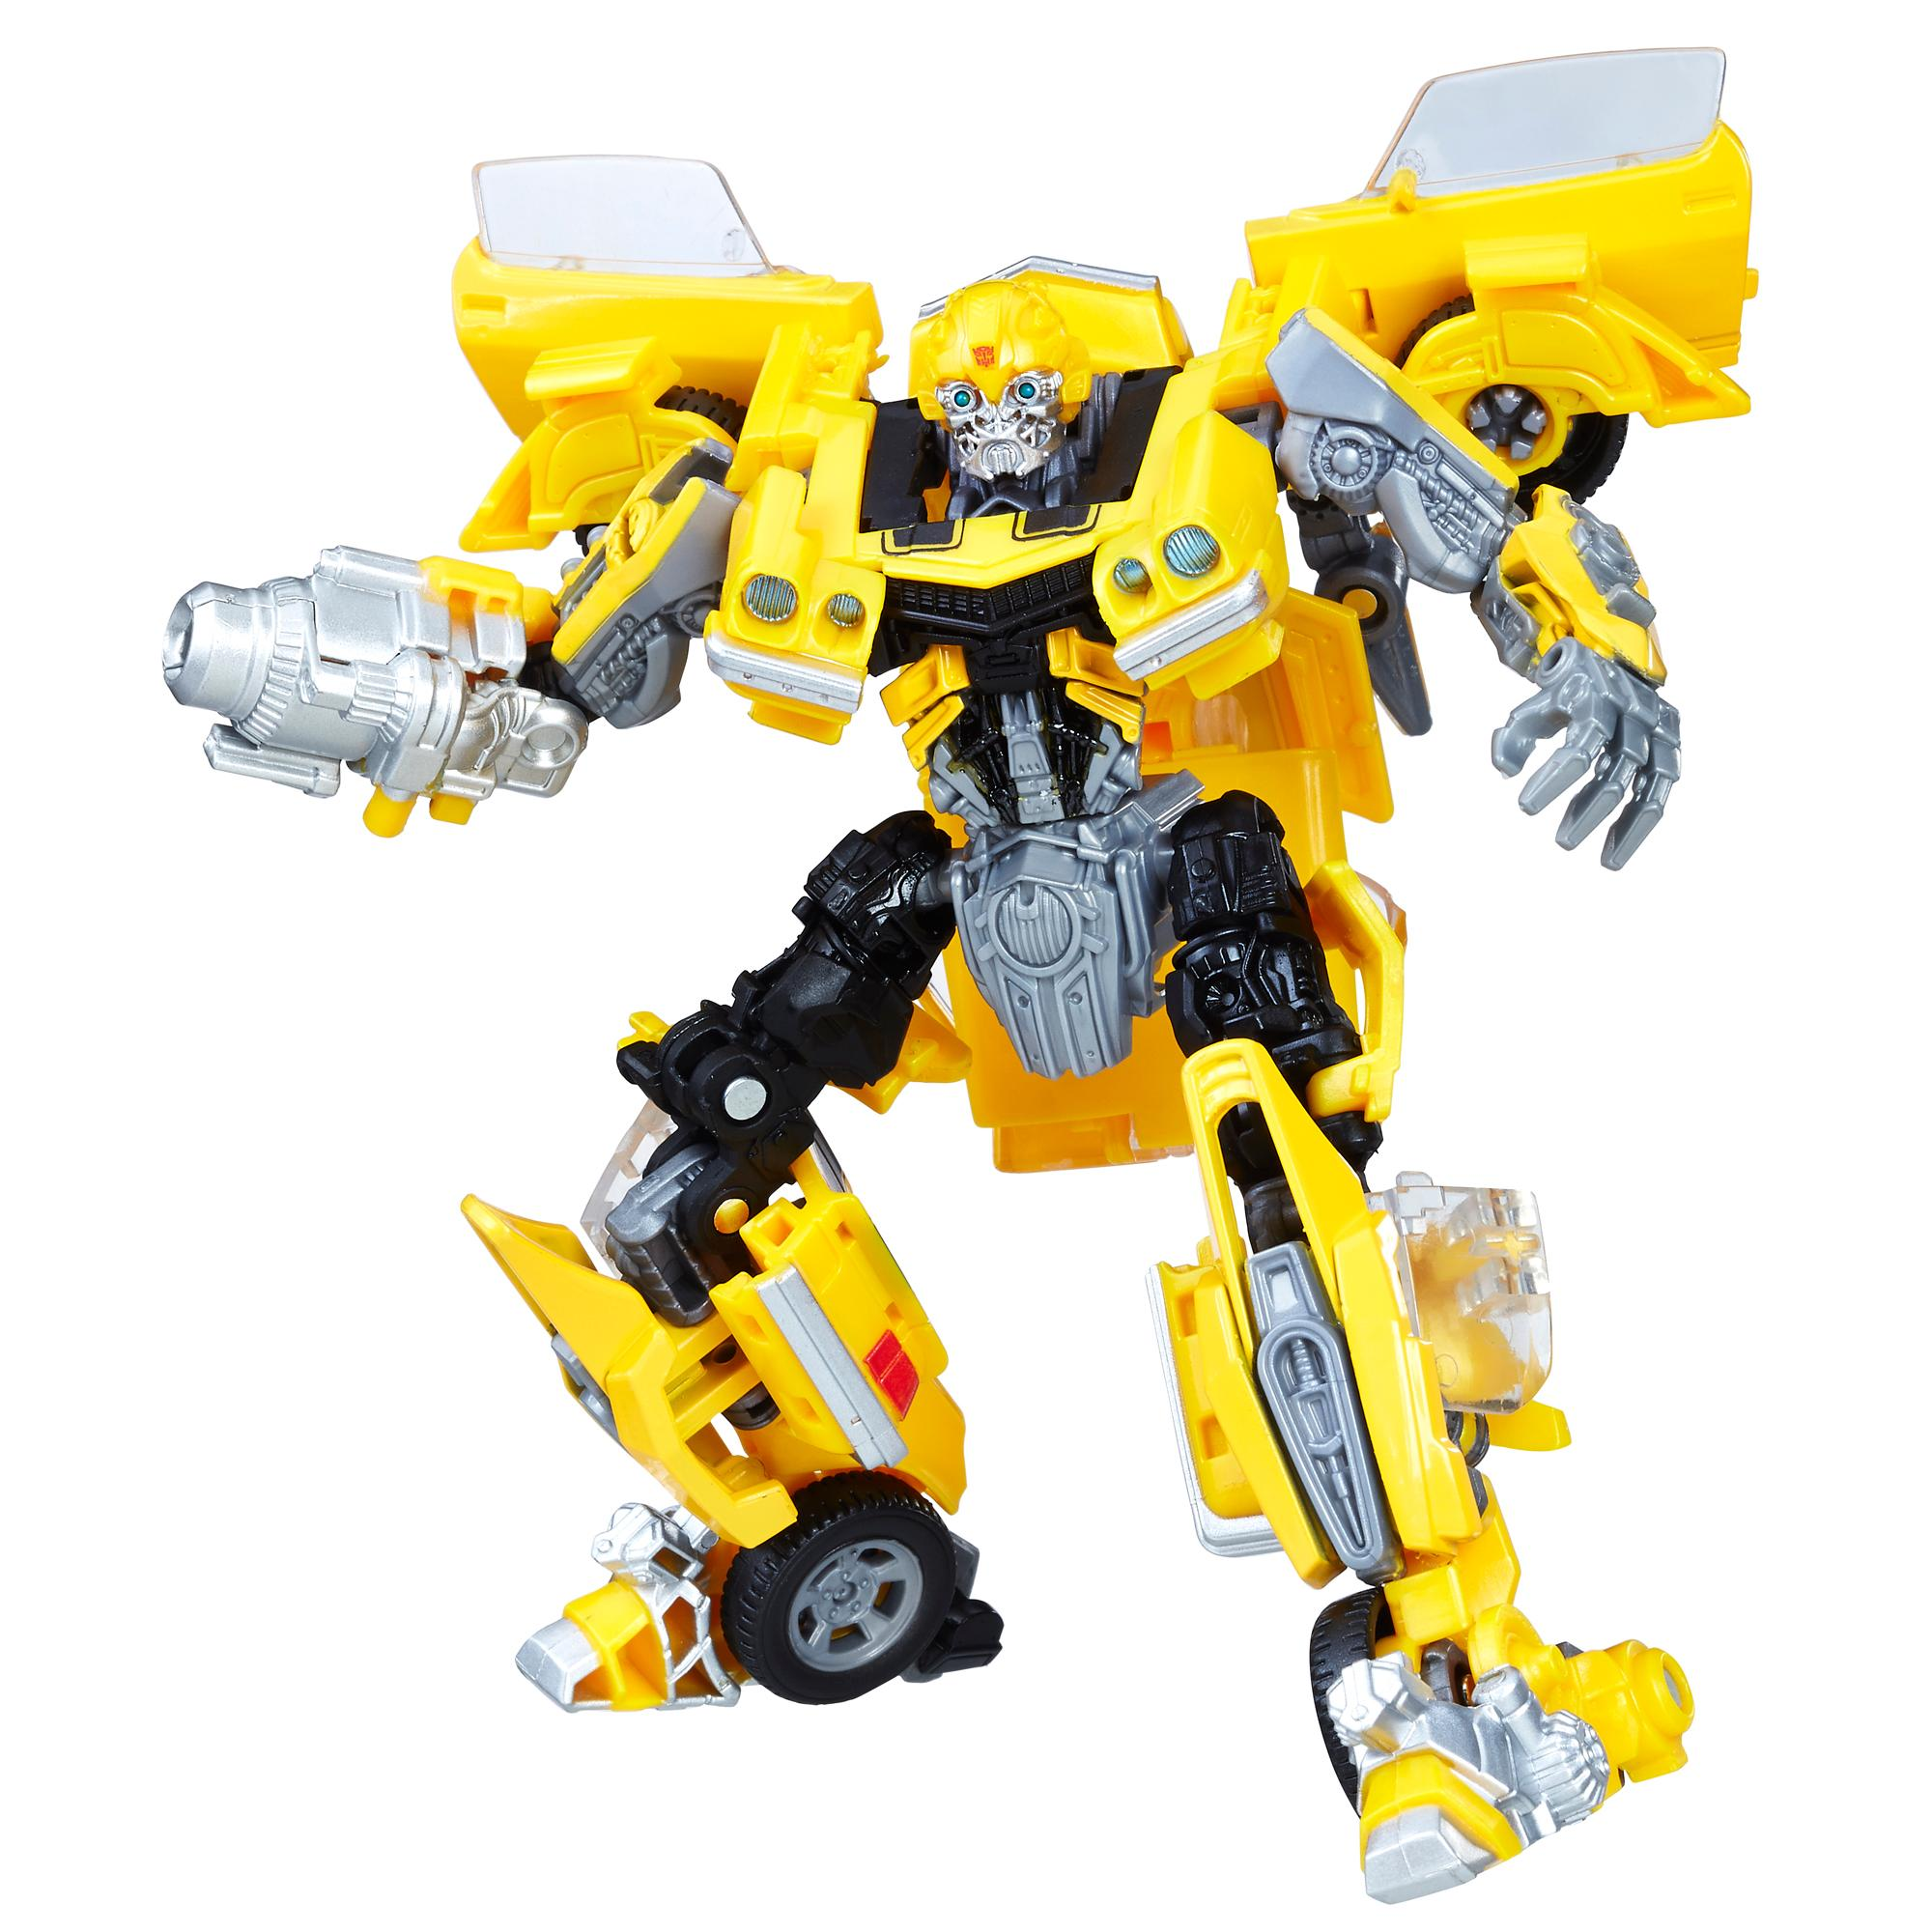 Transformers Studio Series - Bumblebee 01 (Deluxe Class)